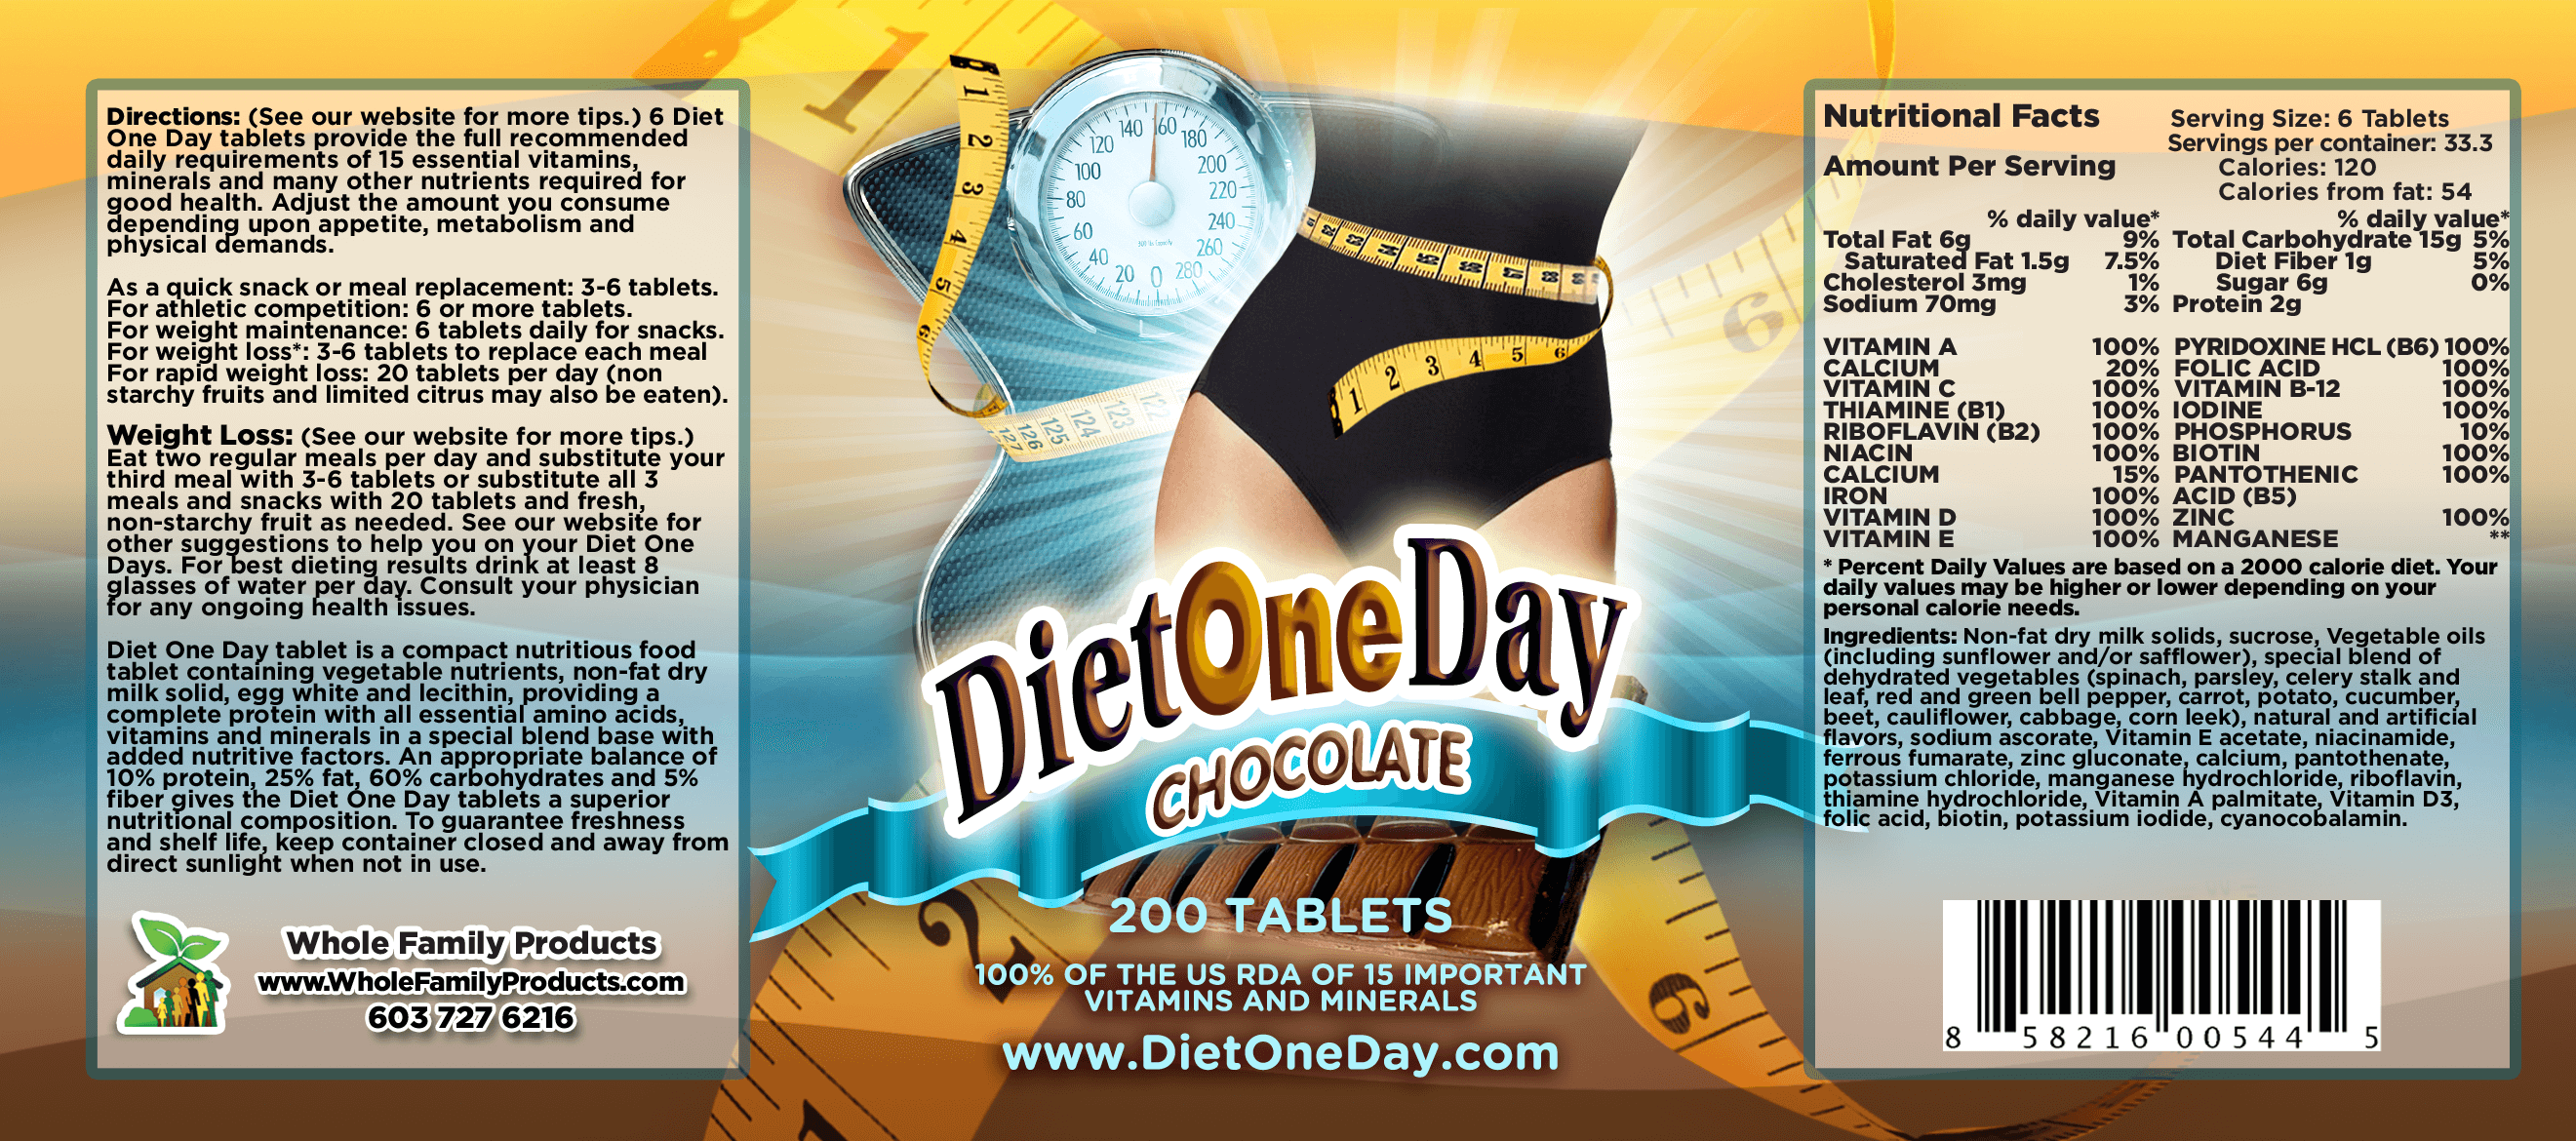 Diet One Day Wafers Chocolate 200ct Product Label